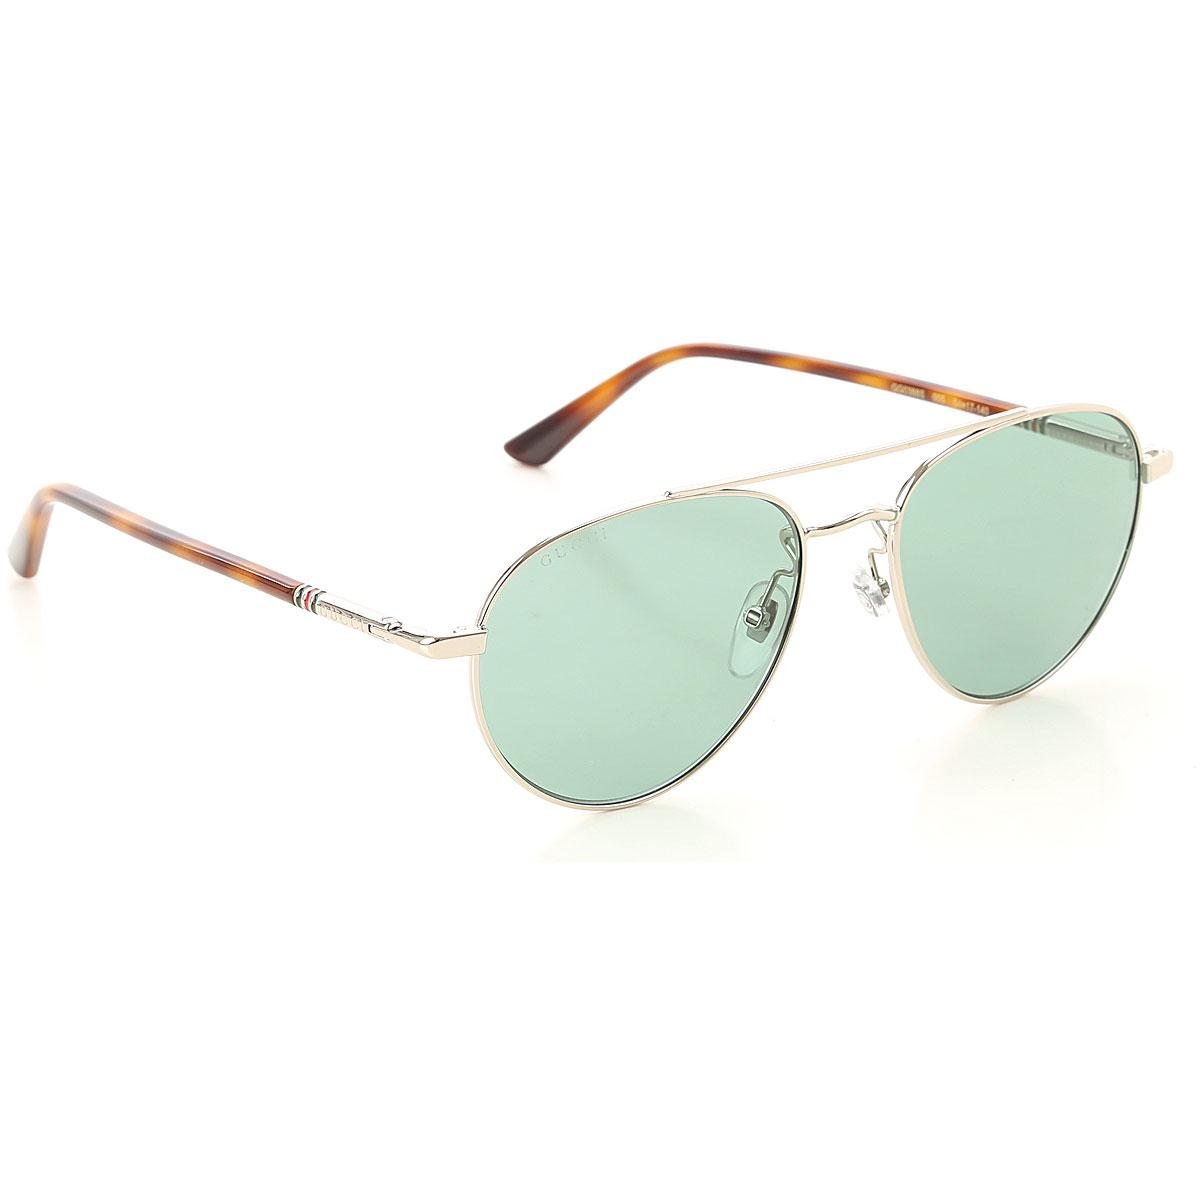 80383dbcd5 Lyst - Gucci Sunglasses in Metallic for Men